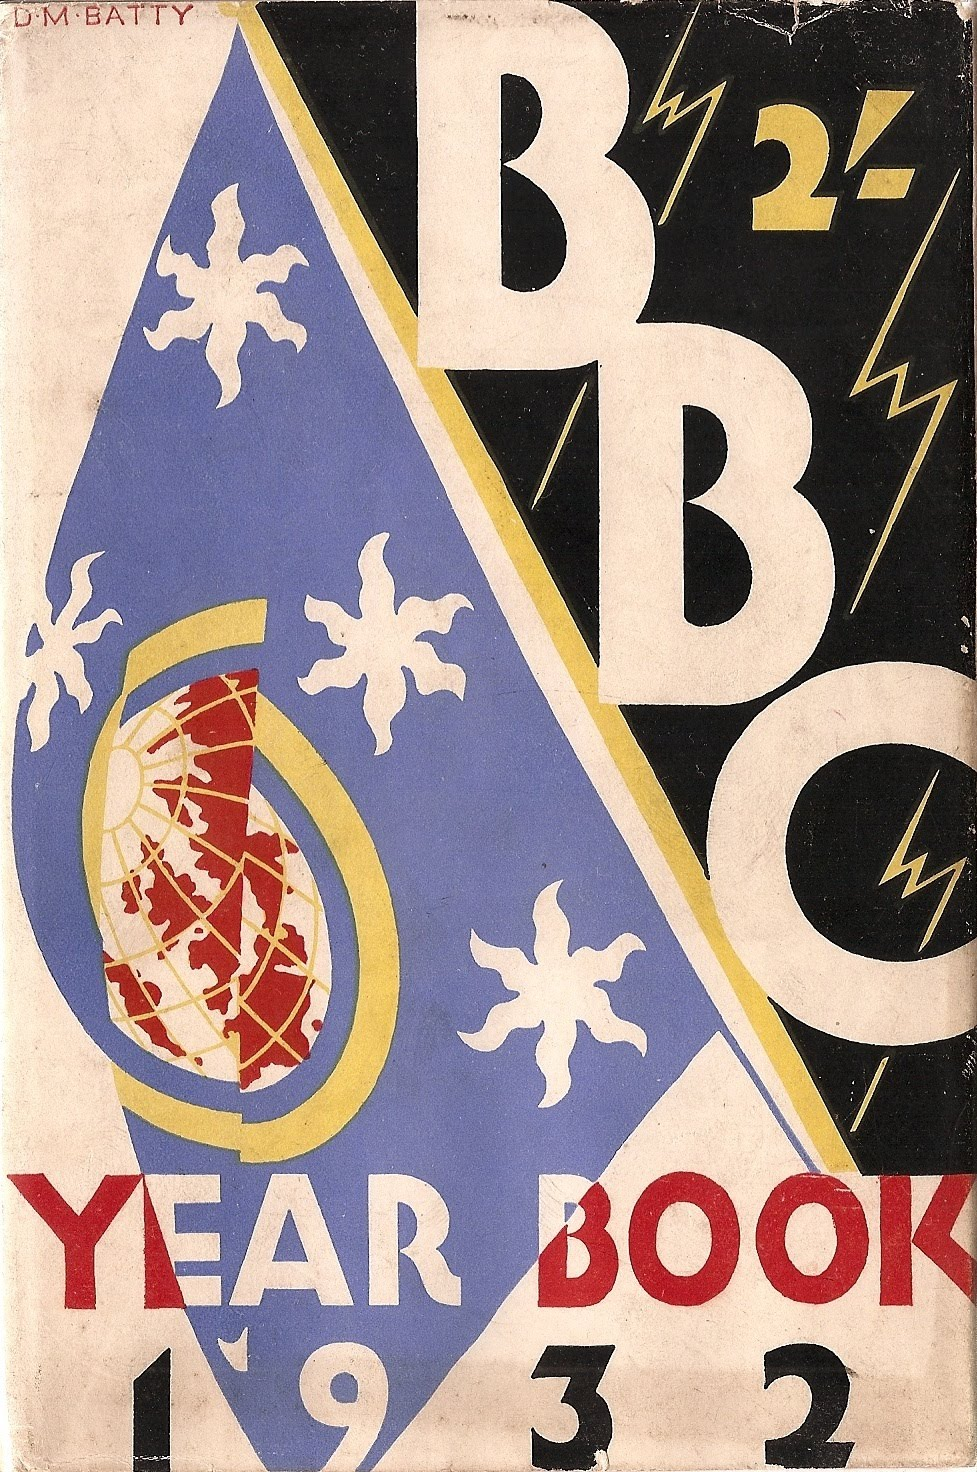 BBC Yearbook 1932 Jacket